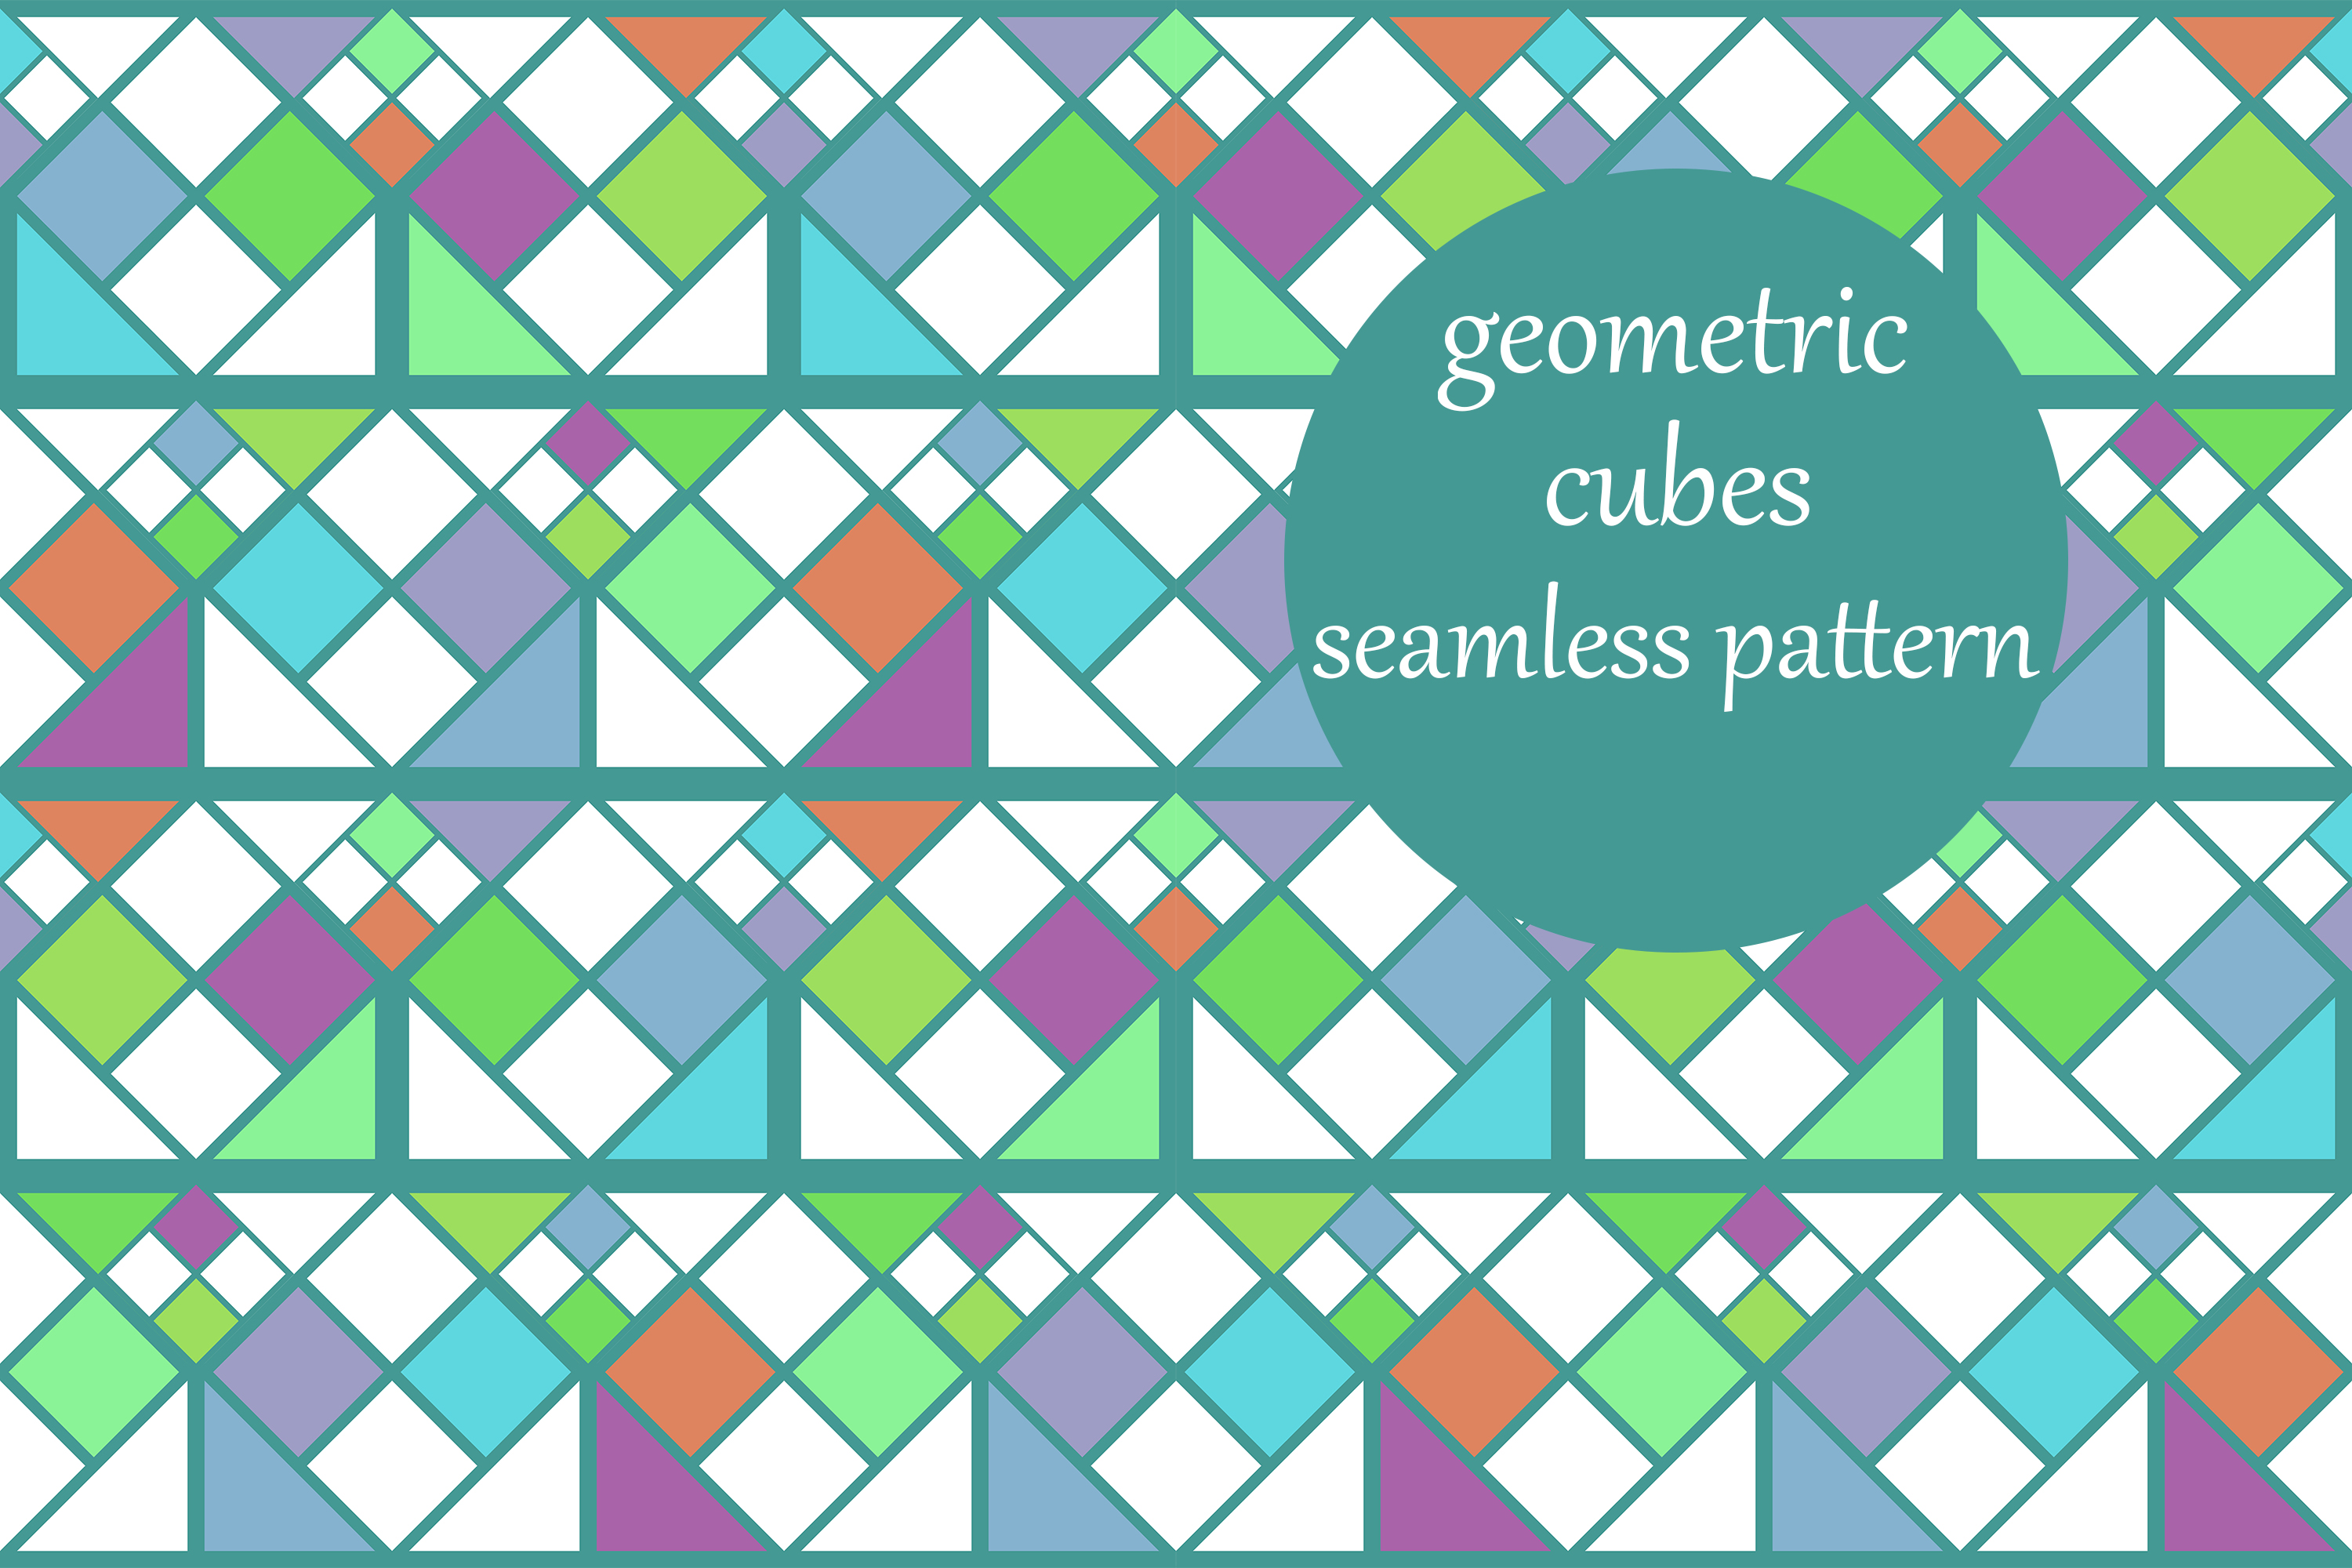 Download Free Geometric Rubiks Cube Pattern Graphic By Brightgrayart for Cricut Explore, Silhouette and other cutting machines.